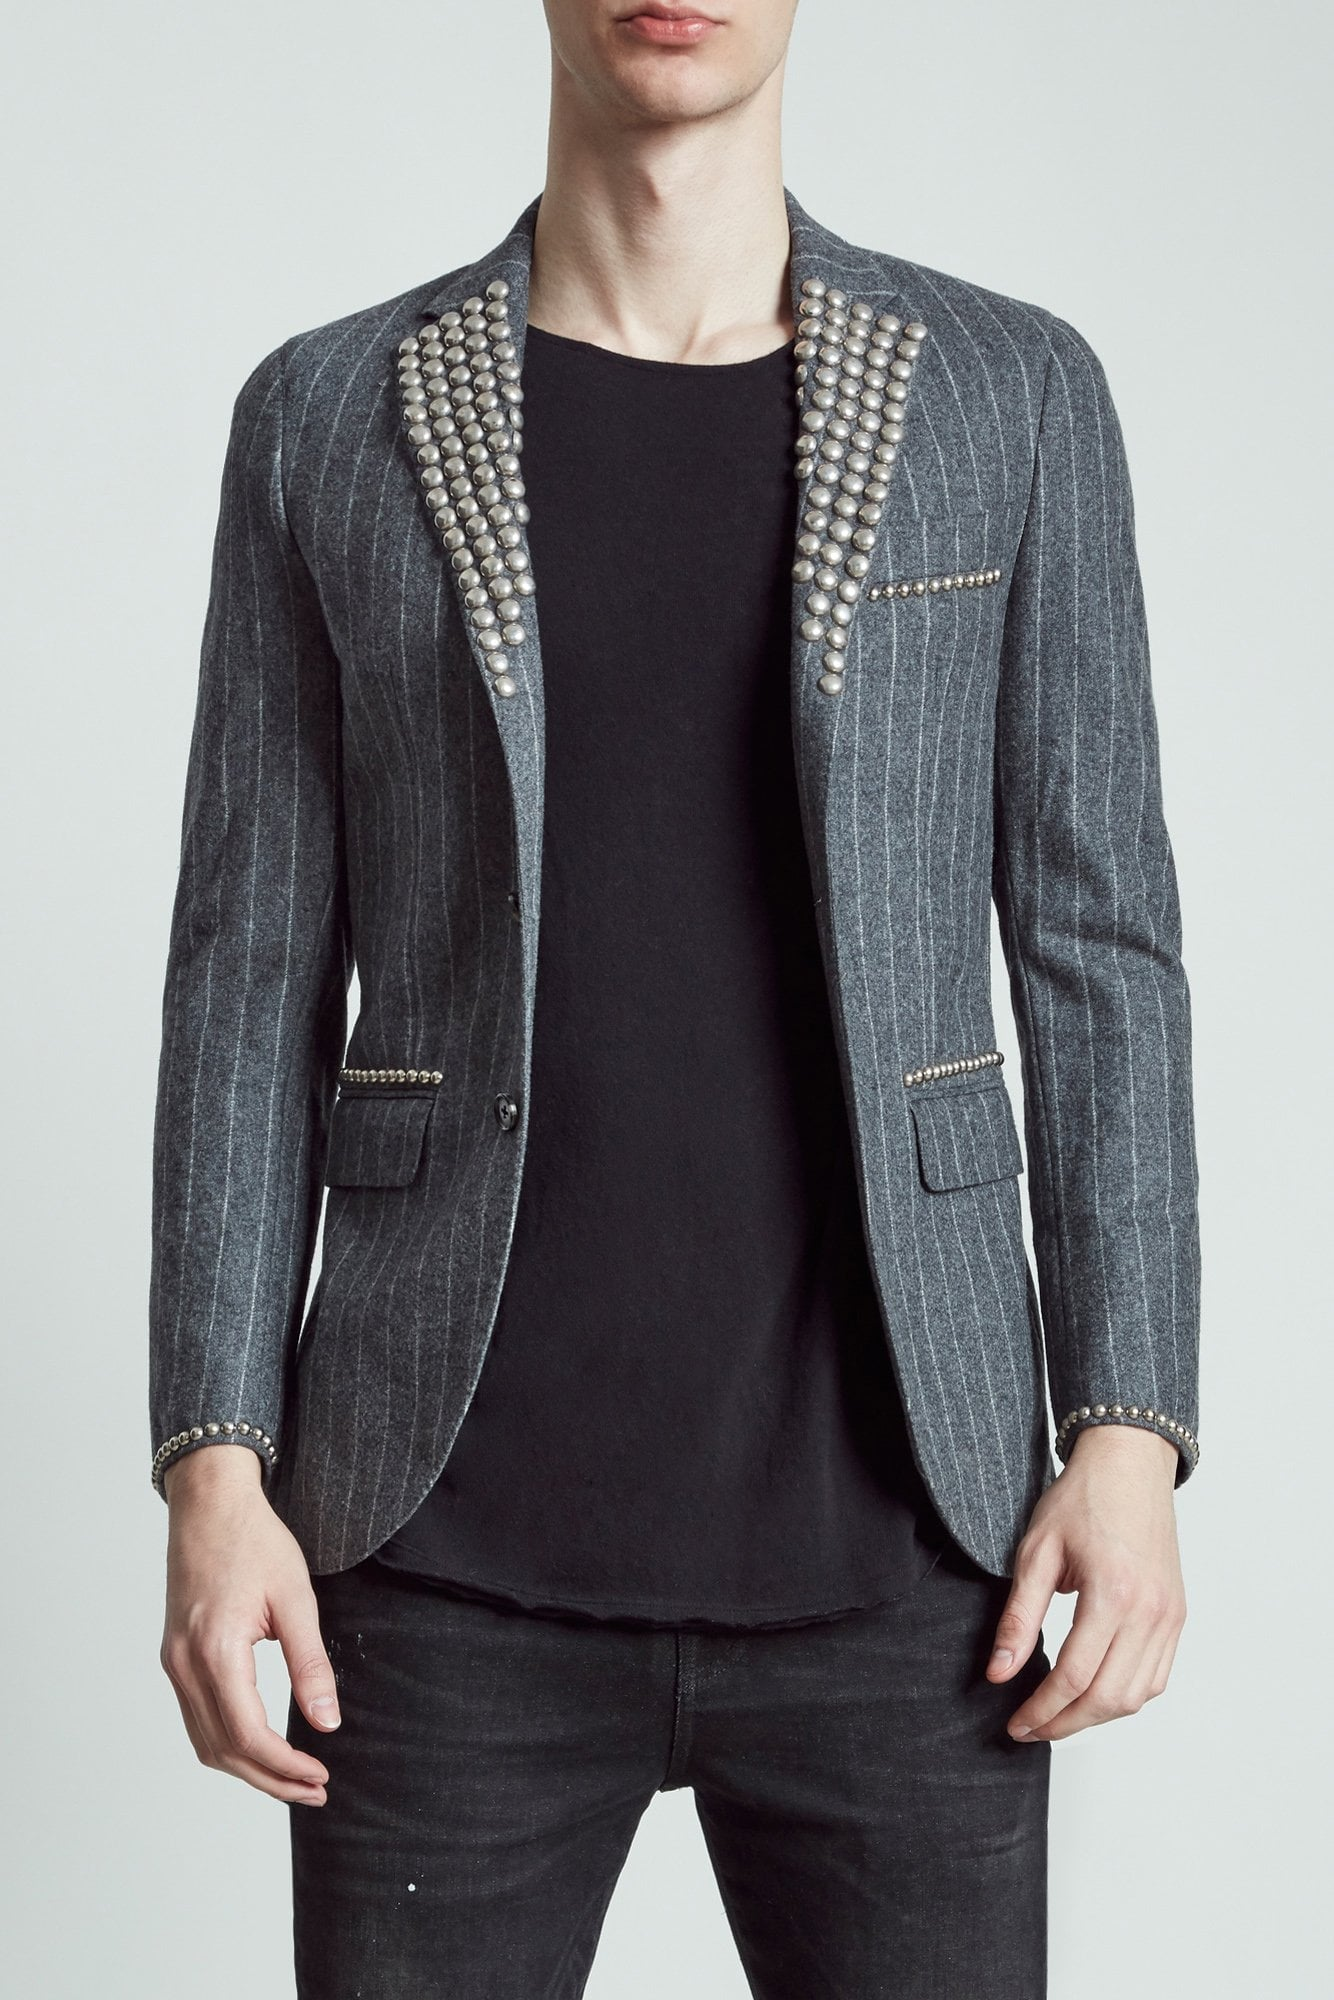 Tailored Blazer - Chalk Pinstripe with Studding